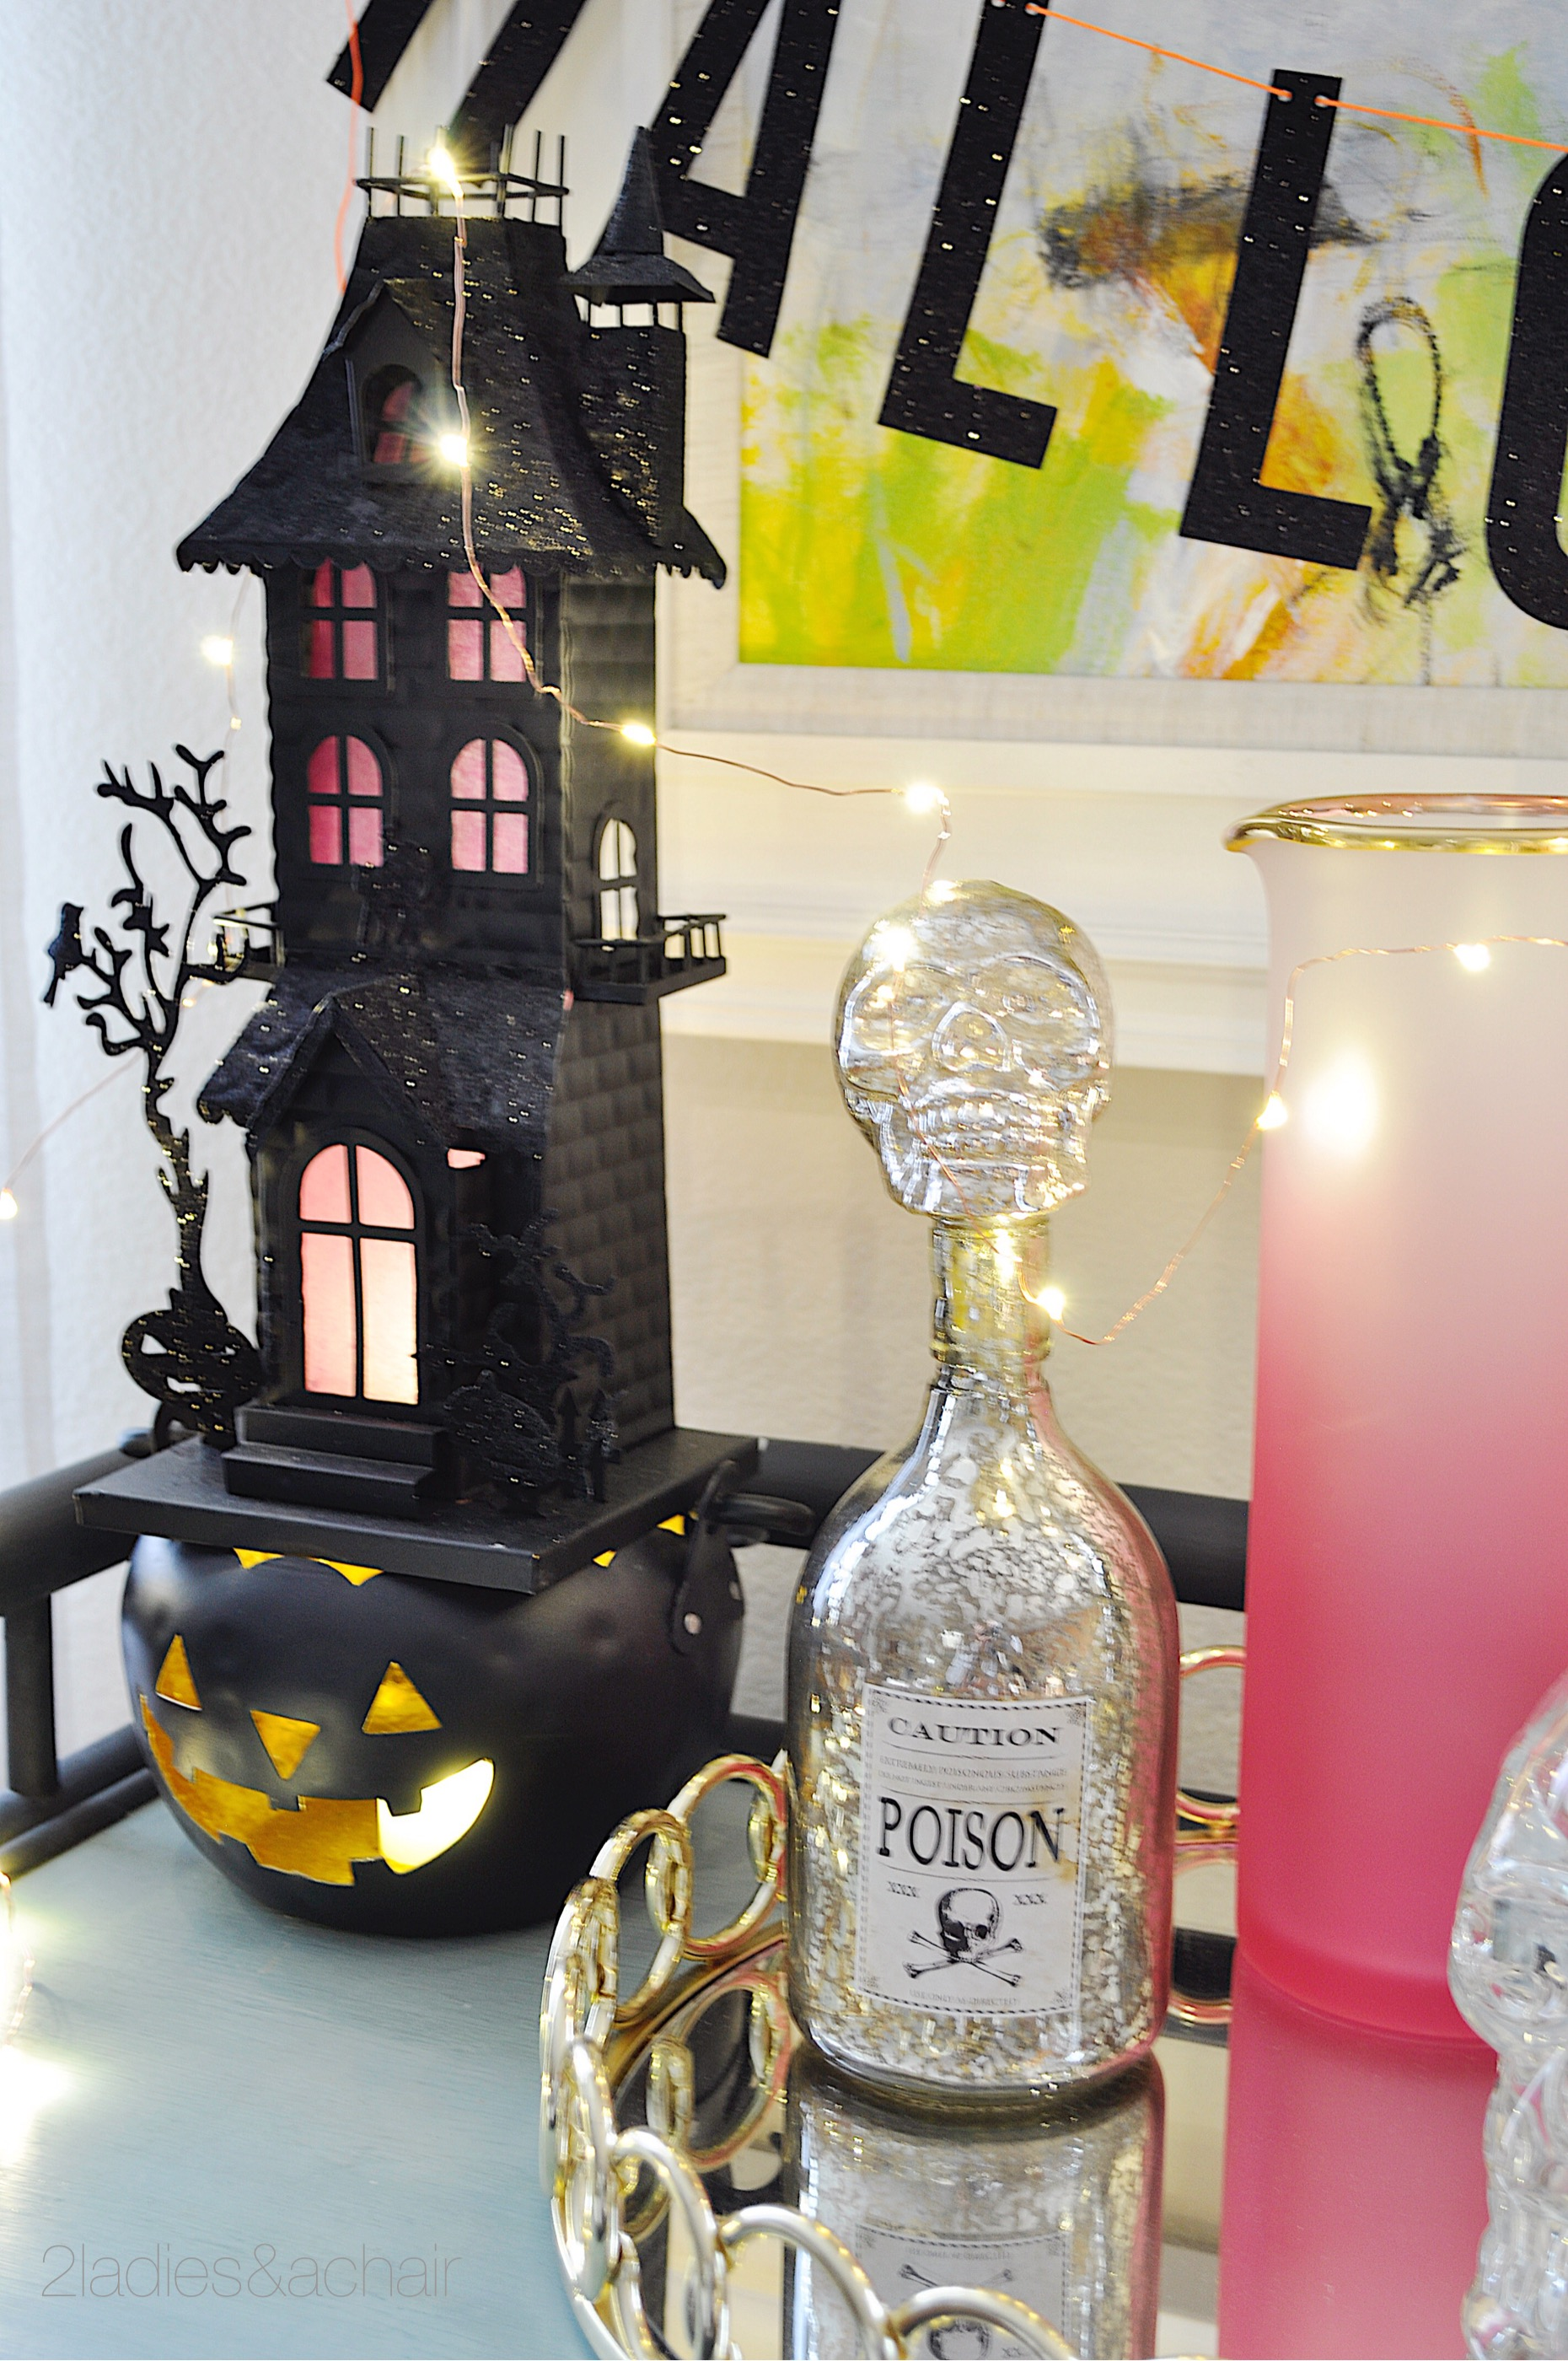 Bar Cart Decorating Ideas For Halloween 2 Ladies A Chair